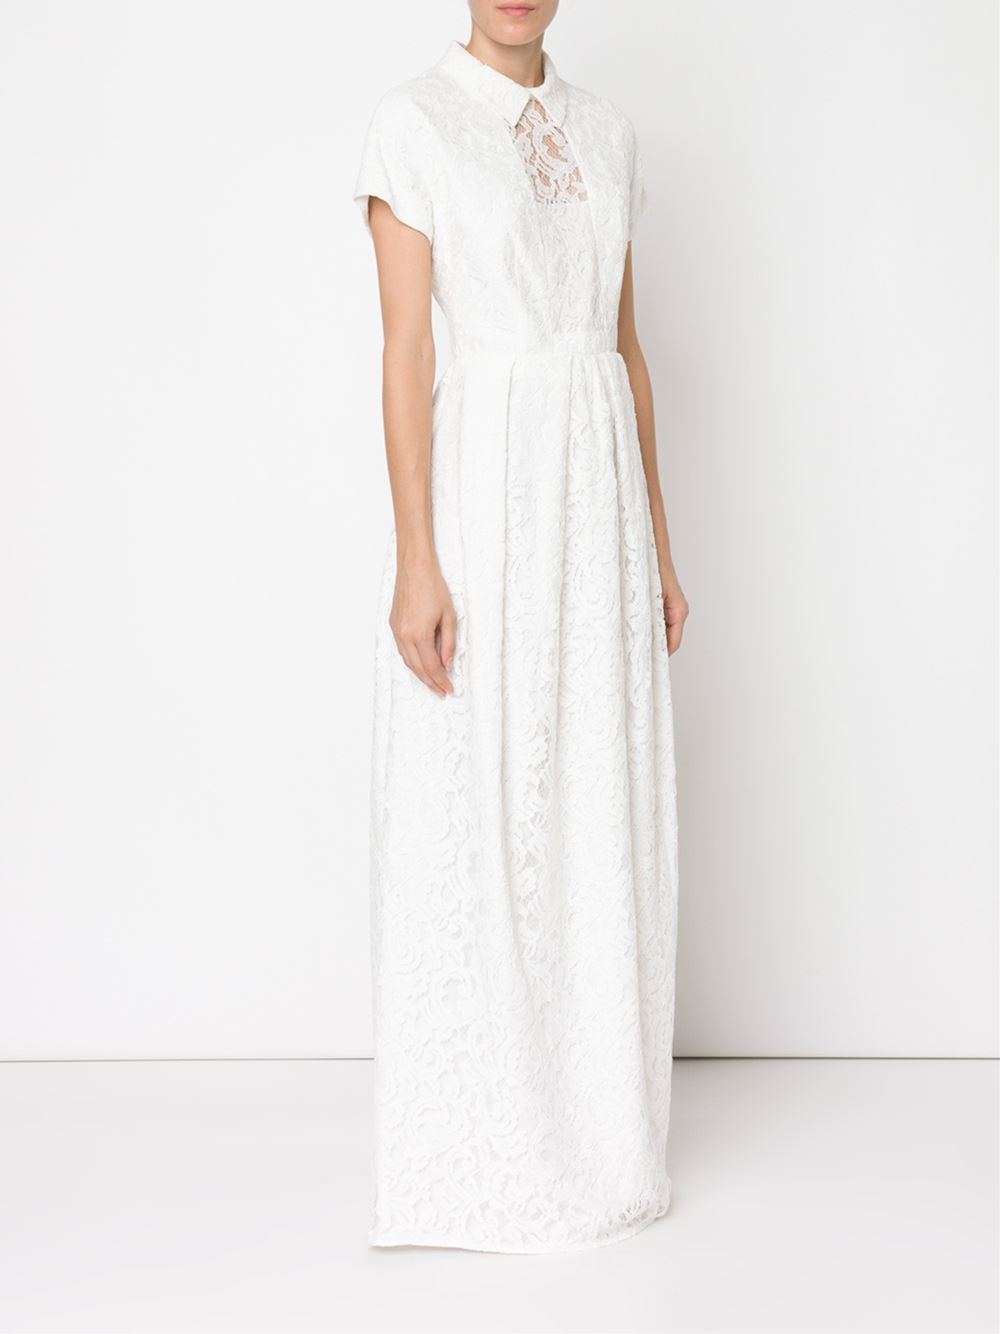 Lyst - Carven Lace Maxi Dress in White